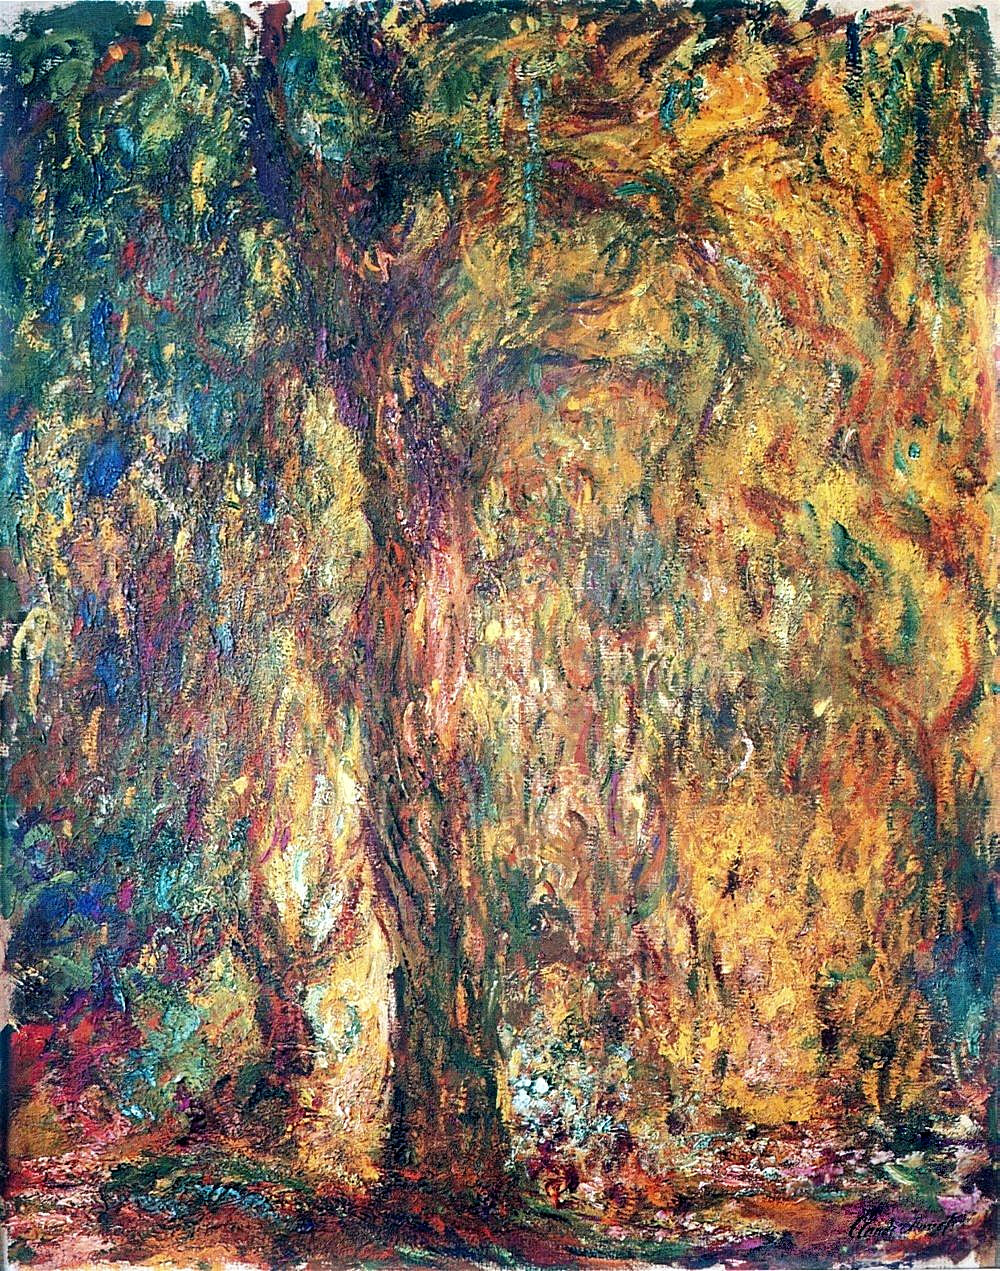 a biography of monet Watch video visit biographycom and learn more about the birth of the art movement impressionism through the work of claude monet, its most famous practitioner.